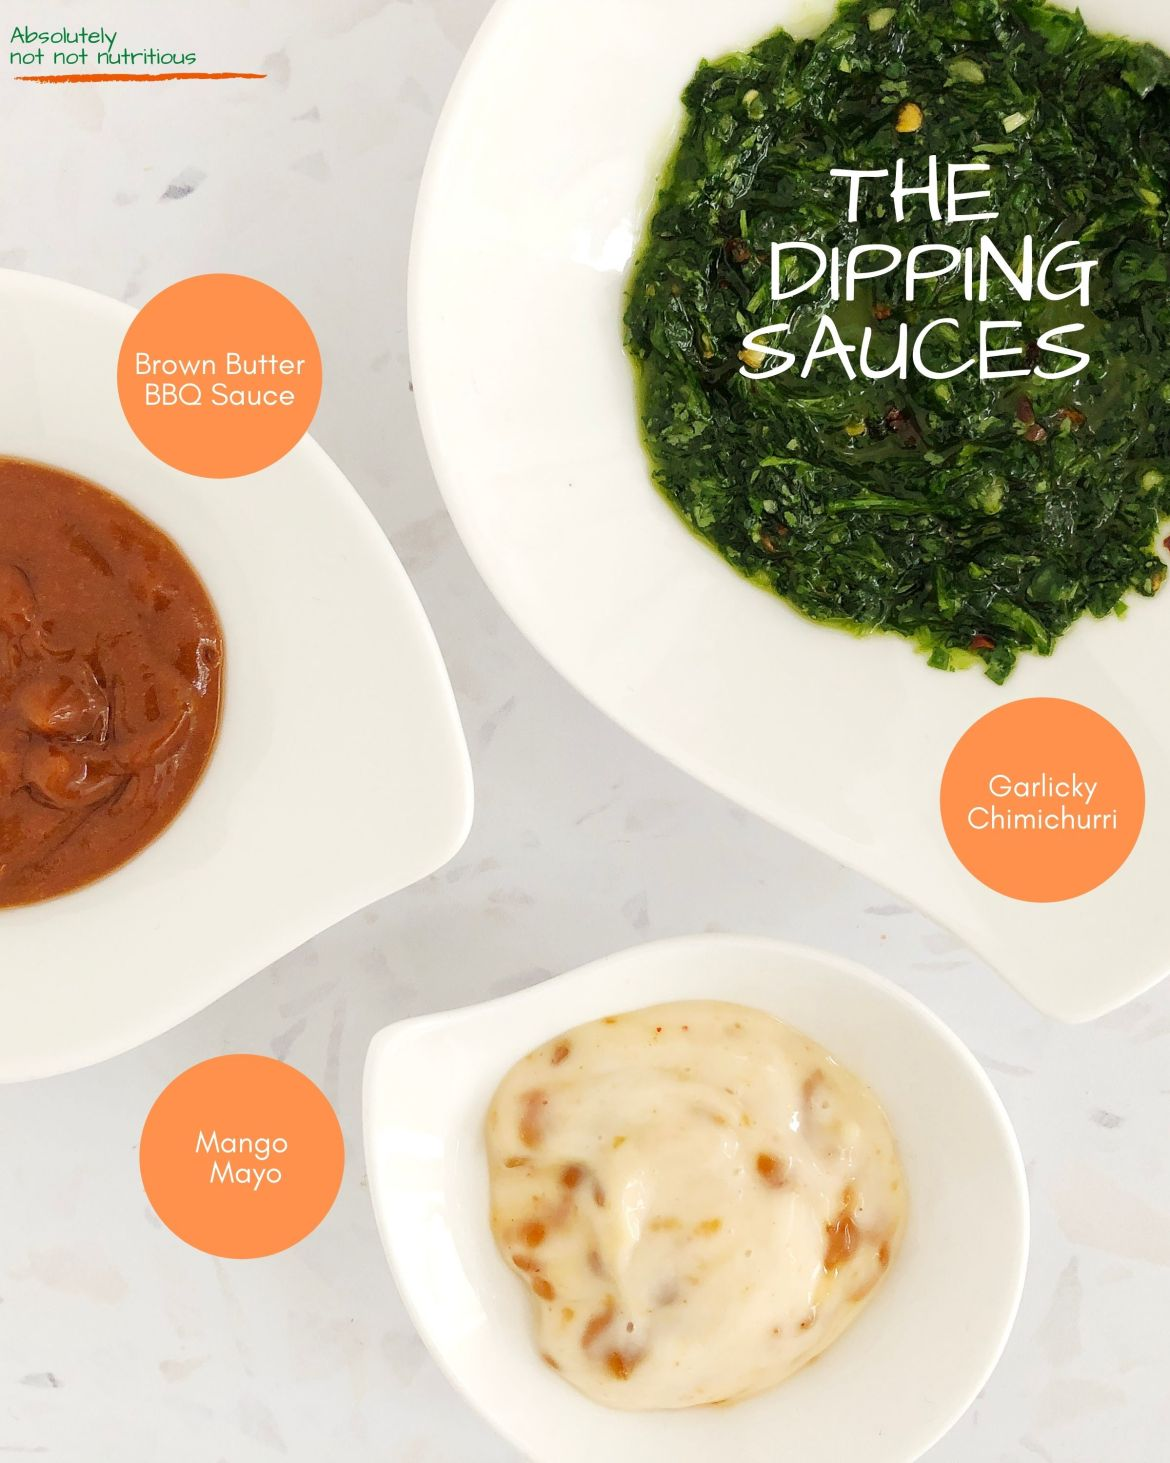 Infographic titled: The Dipping Sauces, showing top-down view of the sauces for the Beyond Meat Grazing Platter: Garlicky Chimichurri, Mango Mayonnaise, and Brown Butter Barbecue Sauce.